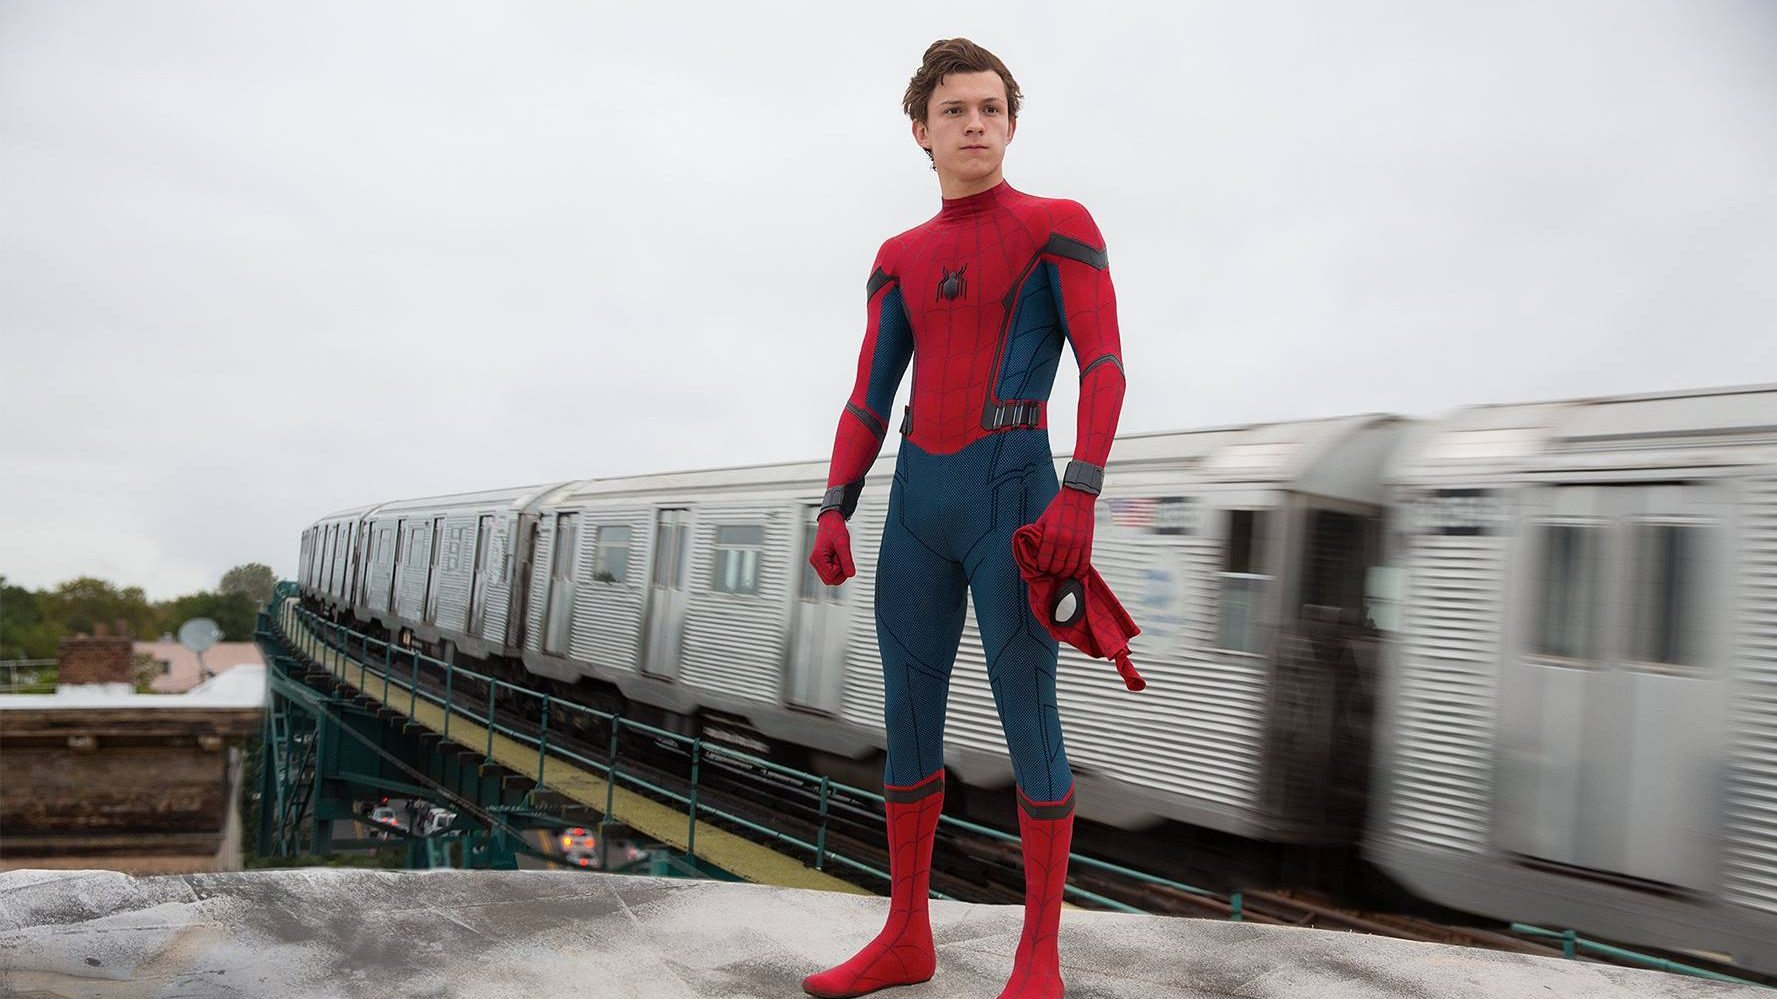 Presentan el trailer oficial de 'Spider-man: Far from home'